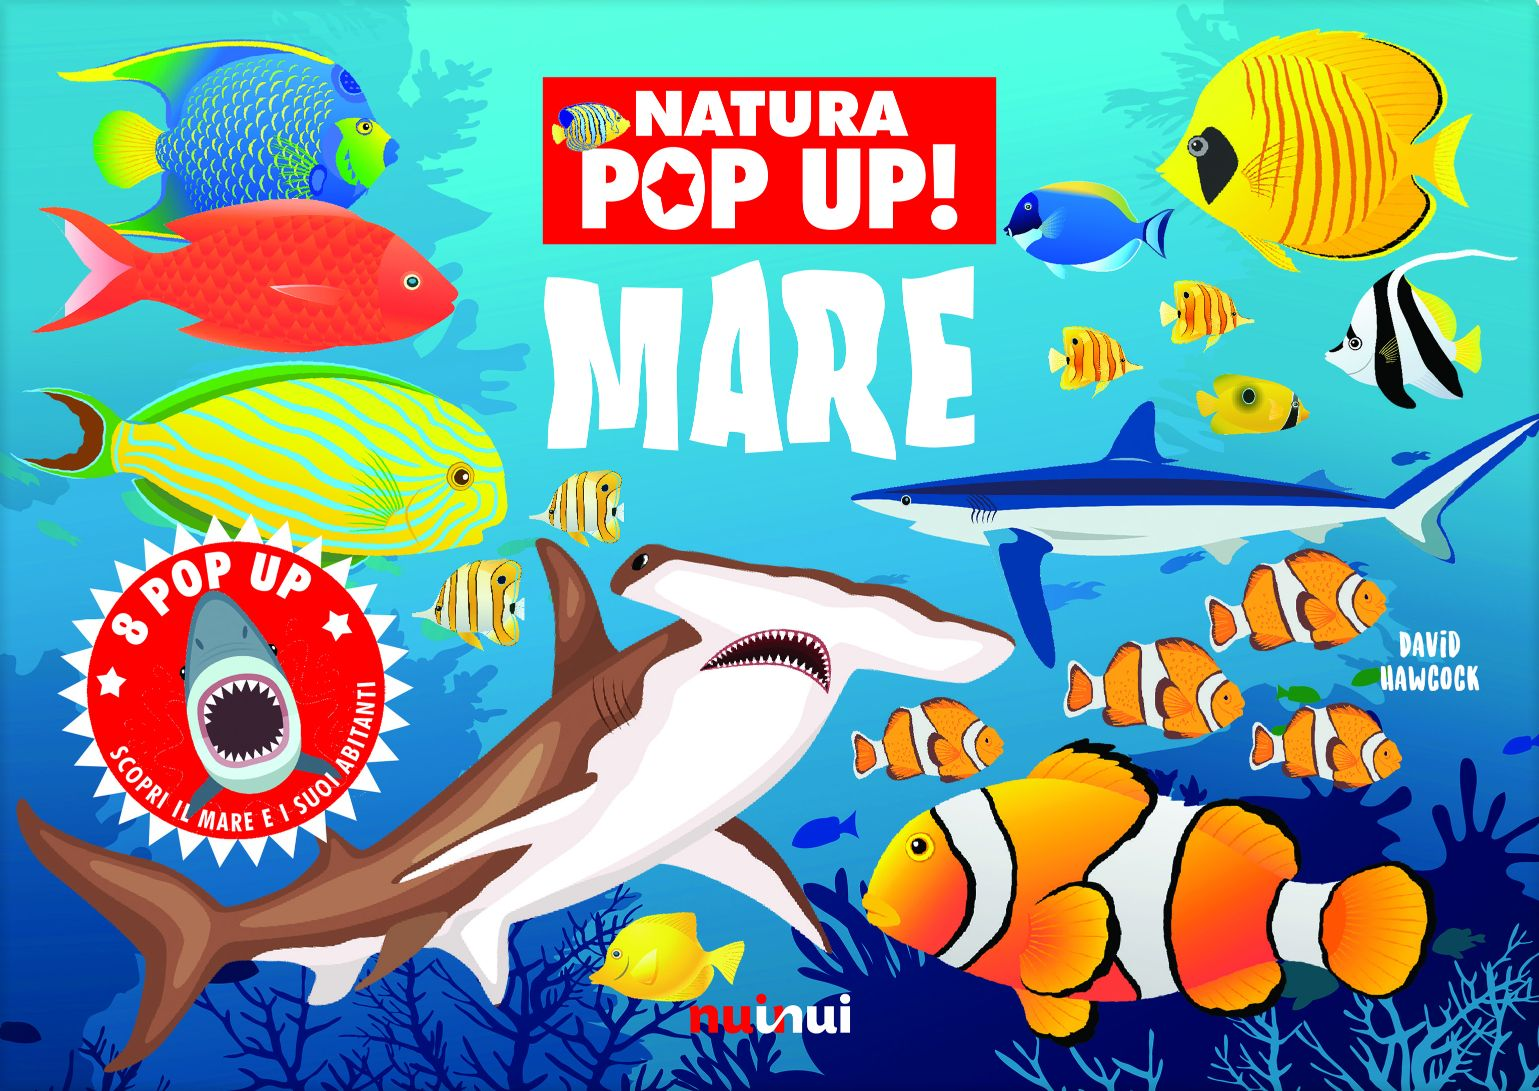 Natura in pop up - Mare